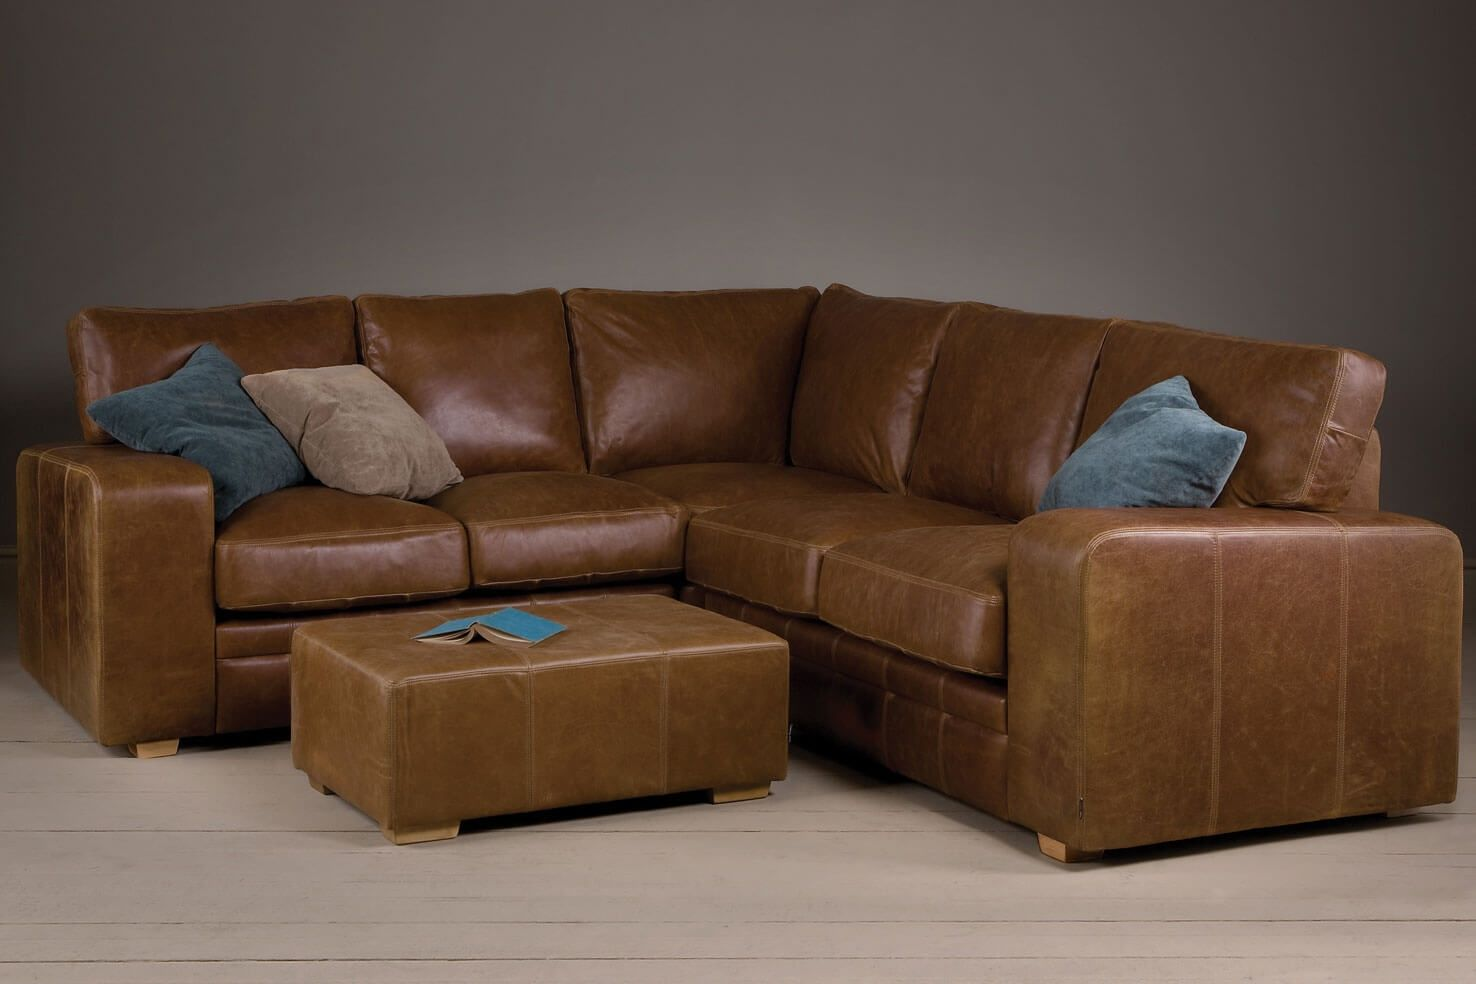 The Broad Arm Leather Corner Sofa By Indigo Furniture Leather Corner Sofa Best Leather Sofa Corner Sofa